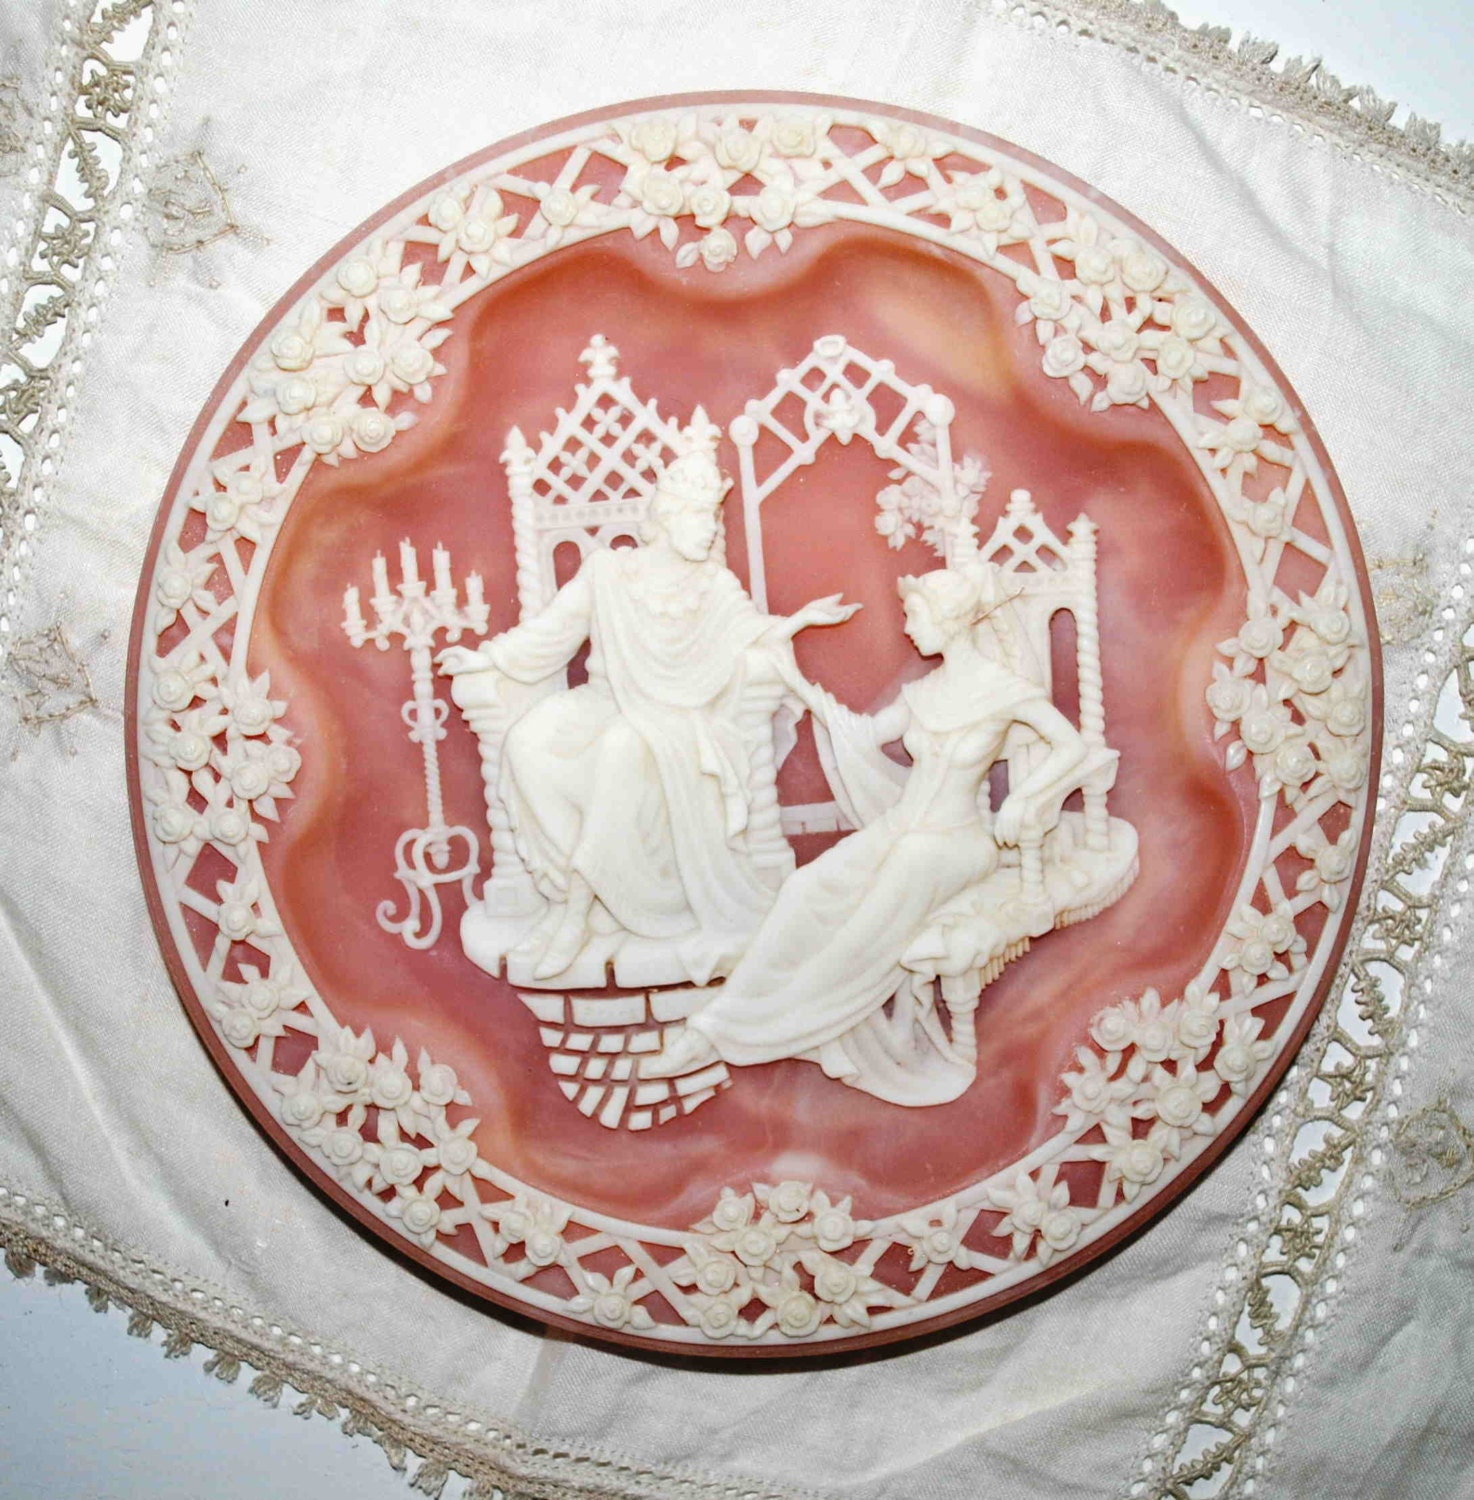 Shakespearean Lovers Collector Plate by Incolay - MACBETH & LADY MACBETH - Macbeth - BridgetsCollection